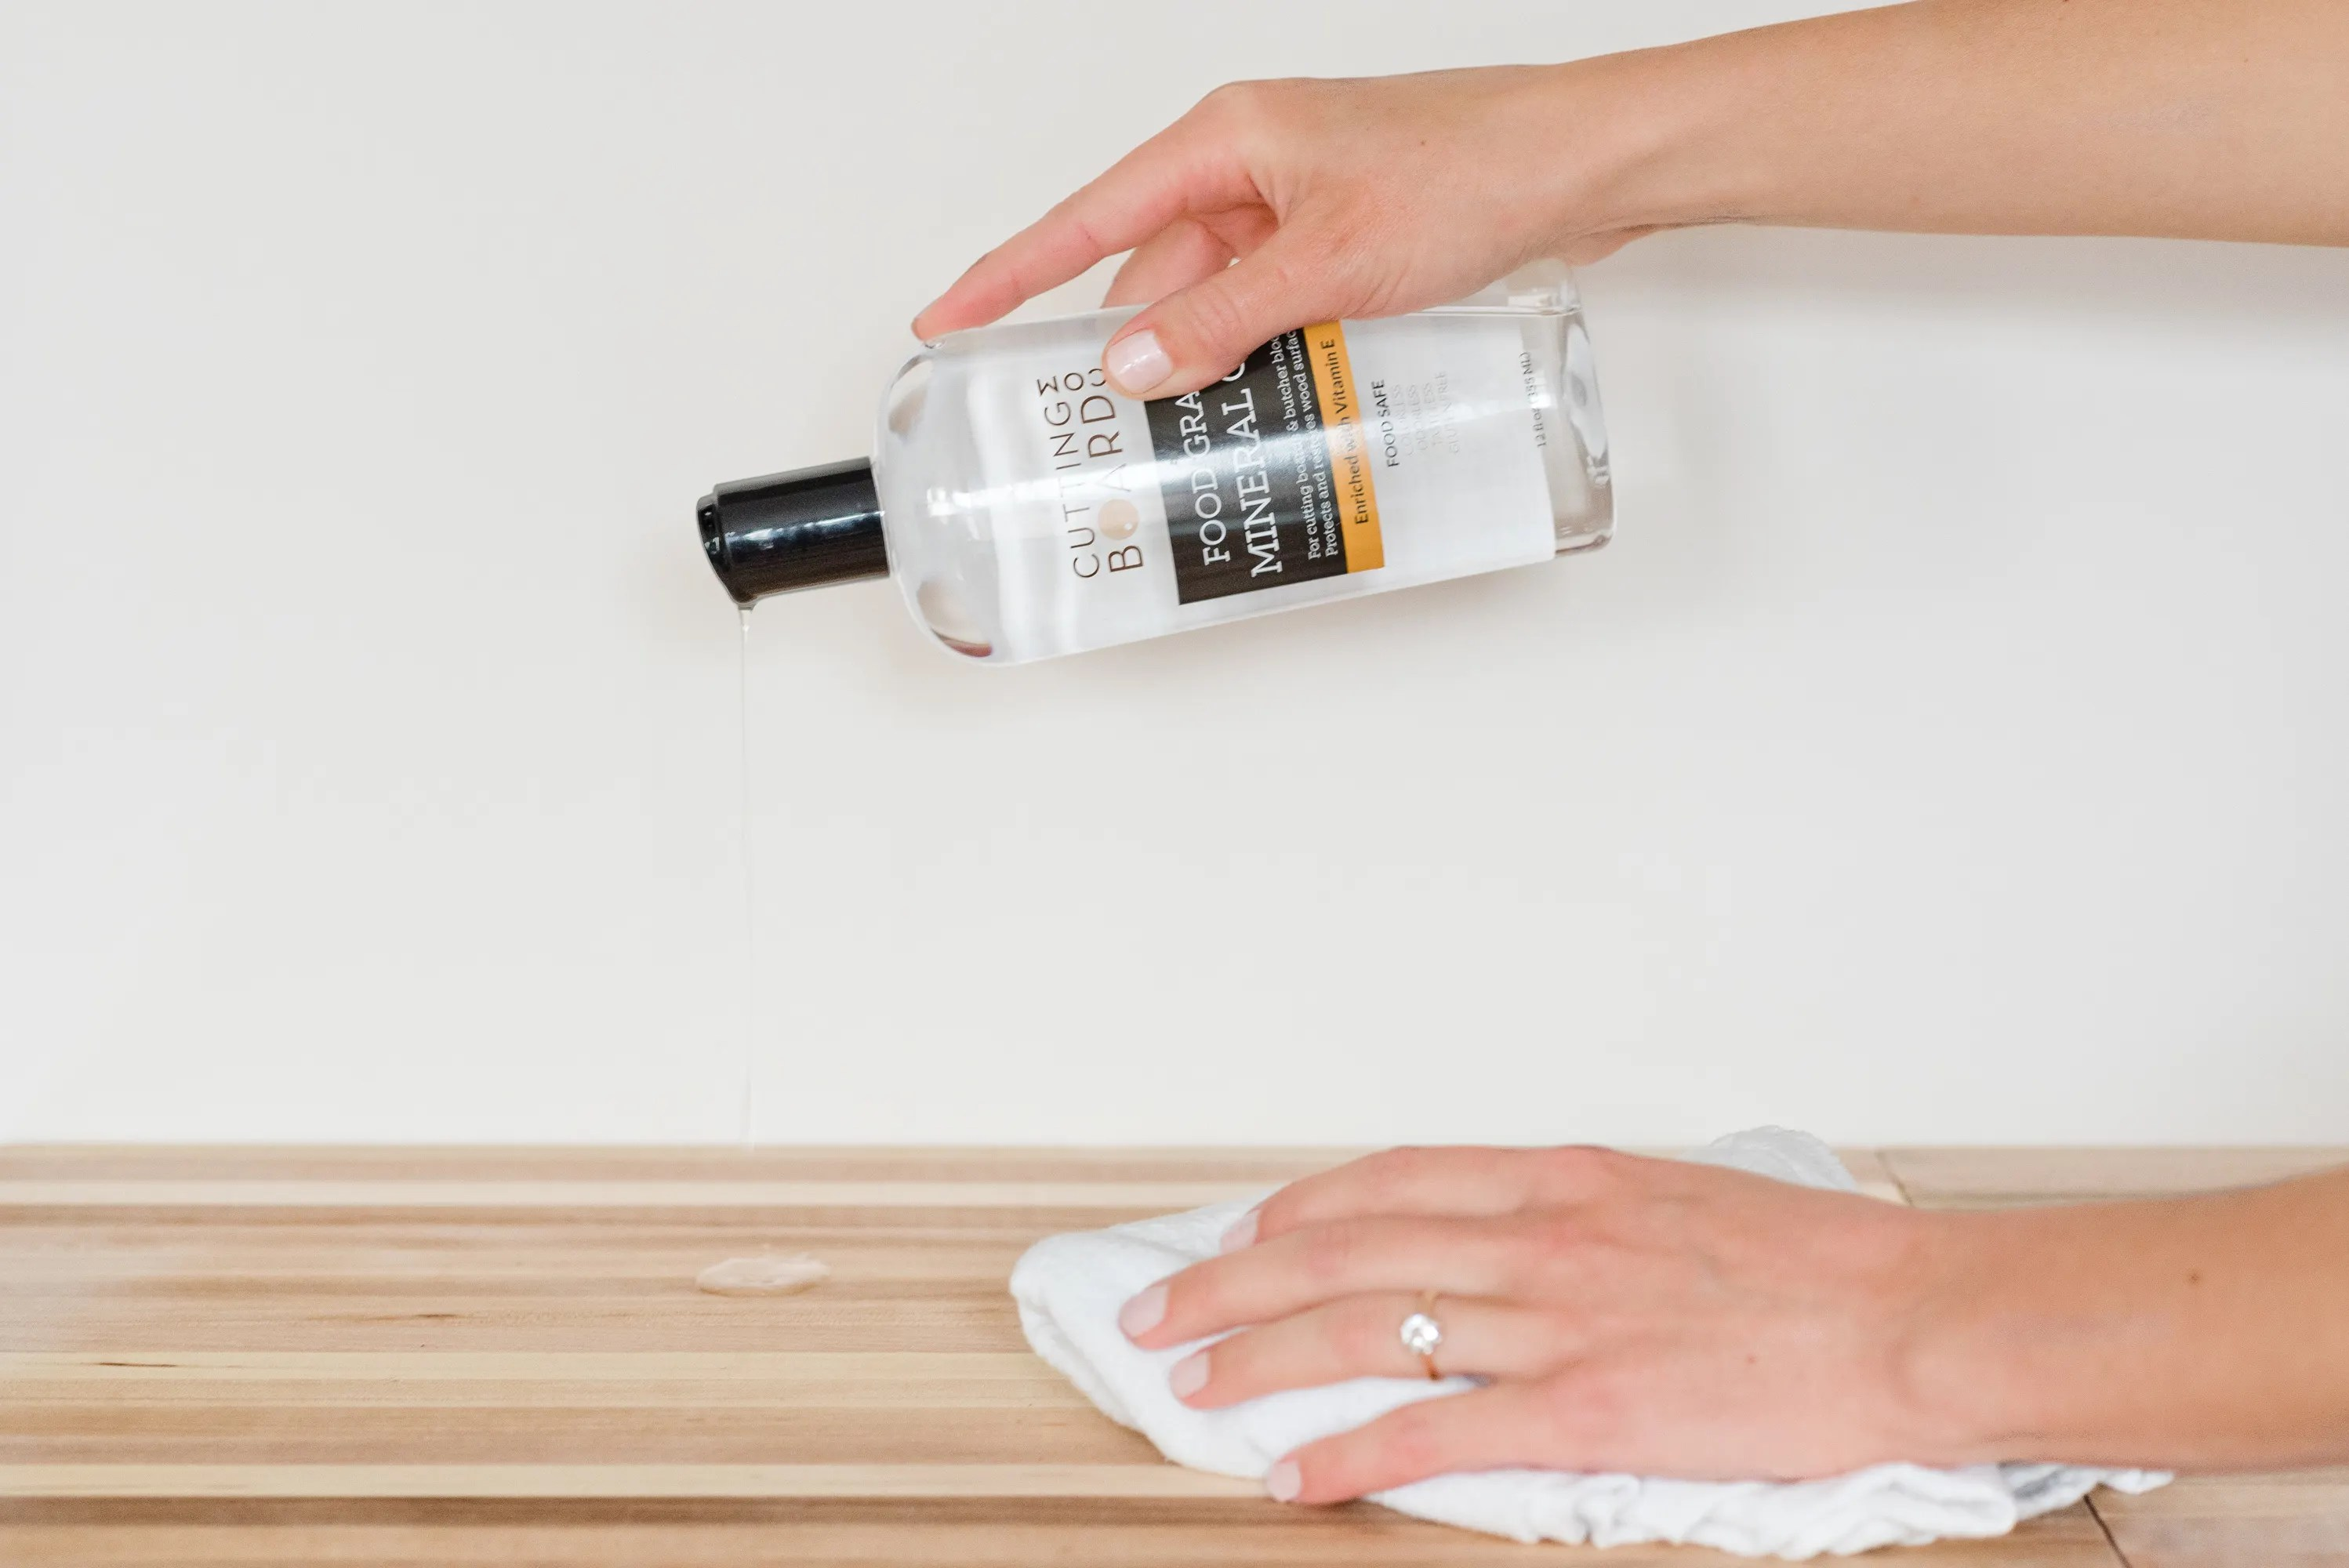 How Long Does It Take For Polyurethane To Cure On Countertops